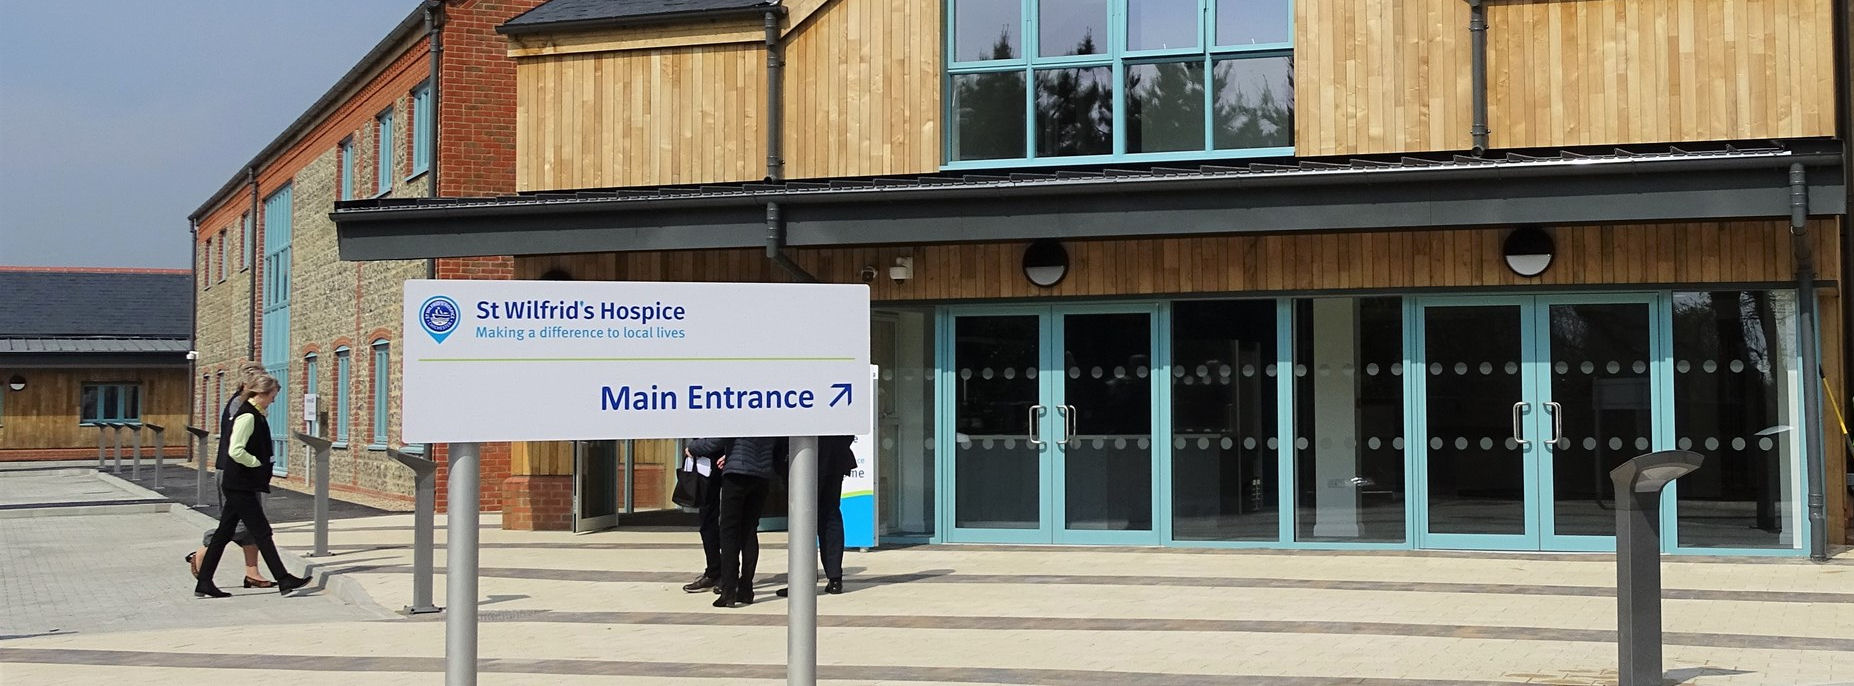 St Wilfrids Hospice - Making a difference to local lives